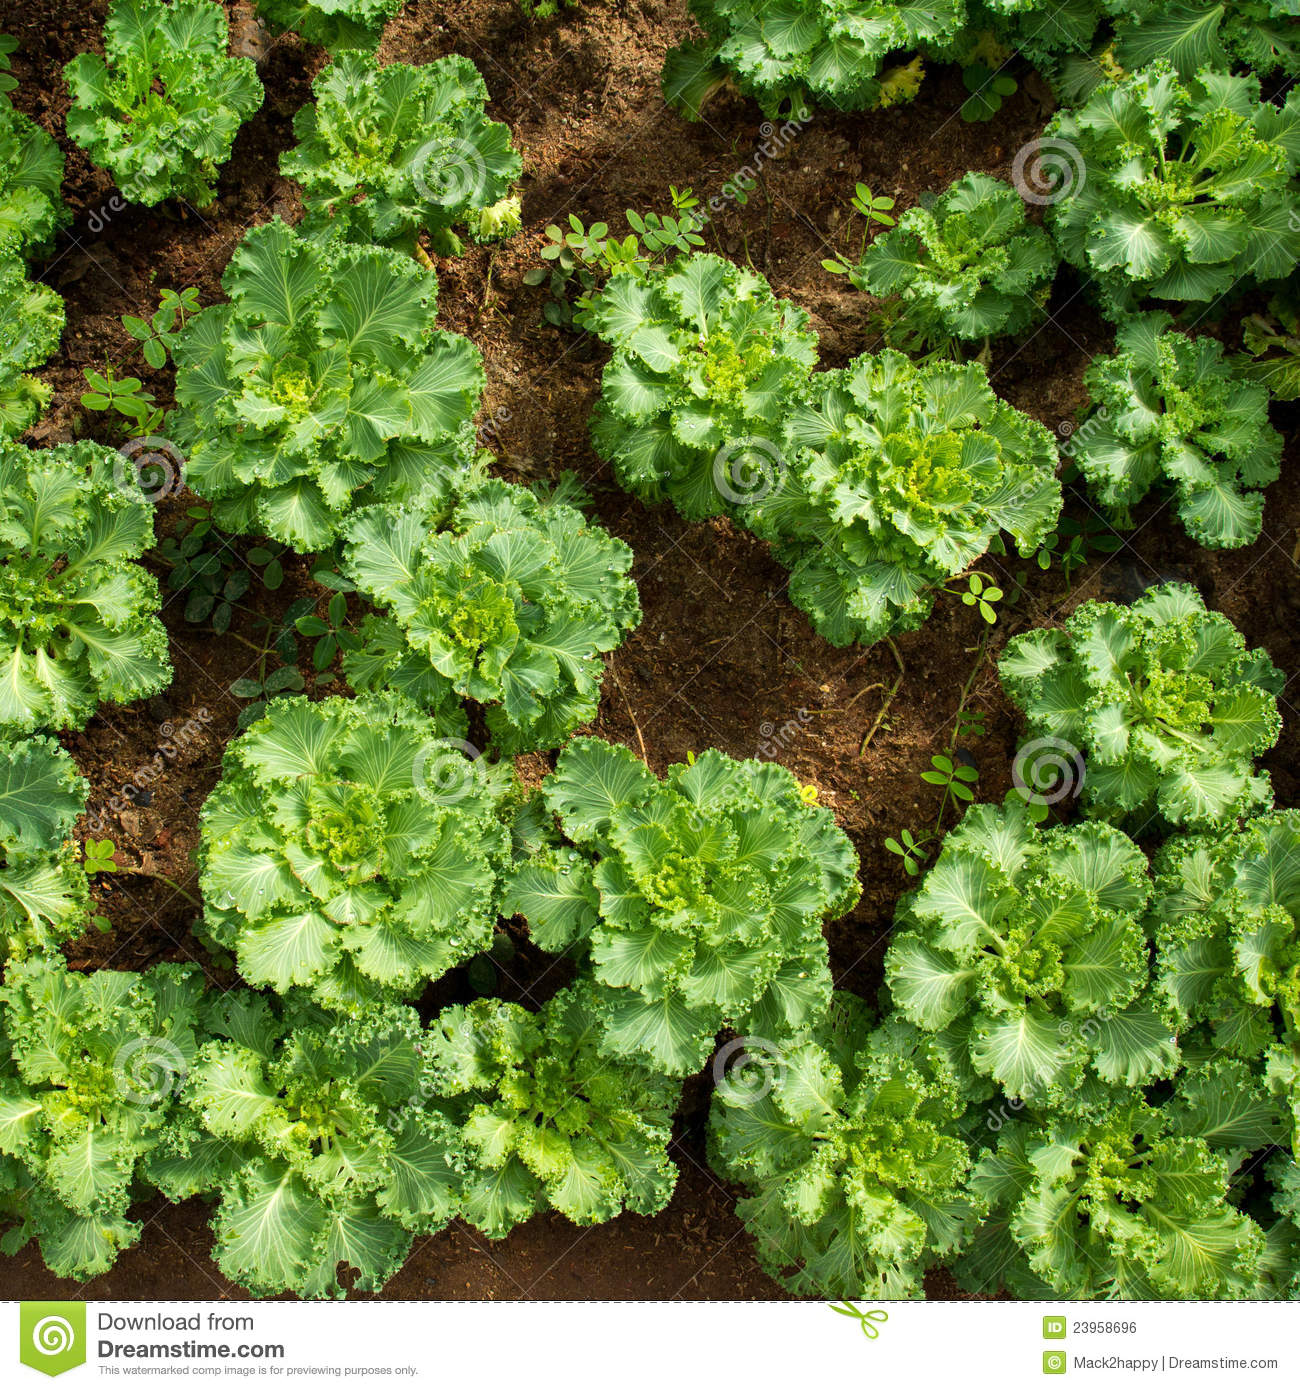 Garden Stock Image Image Of Design: Vegetable Garden From Top View Royalty Free Stock Image